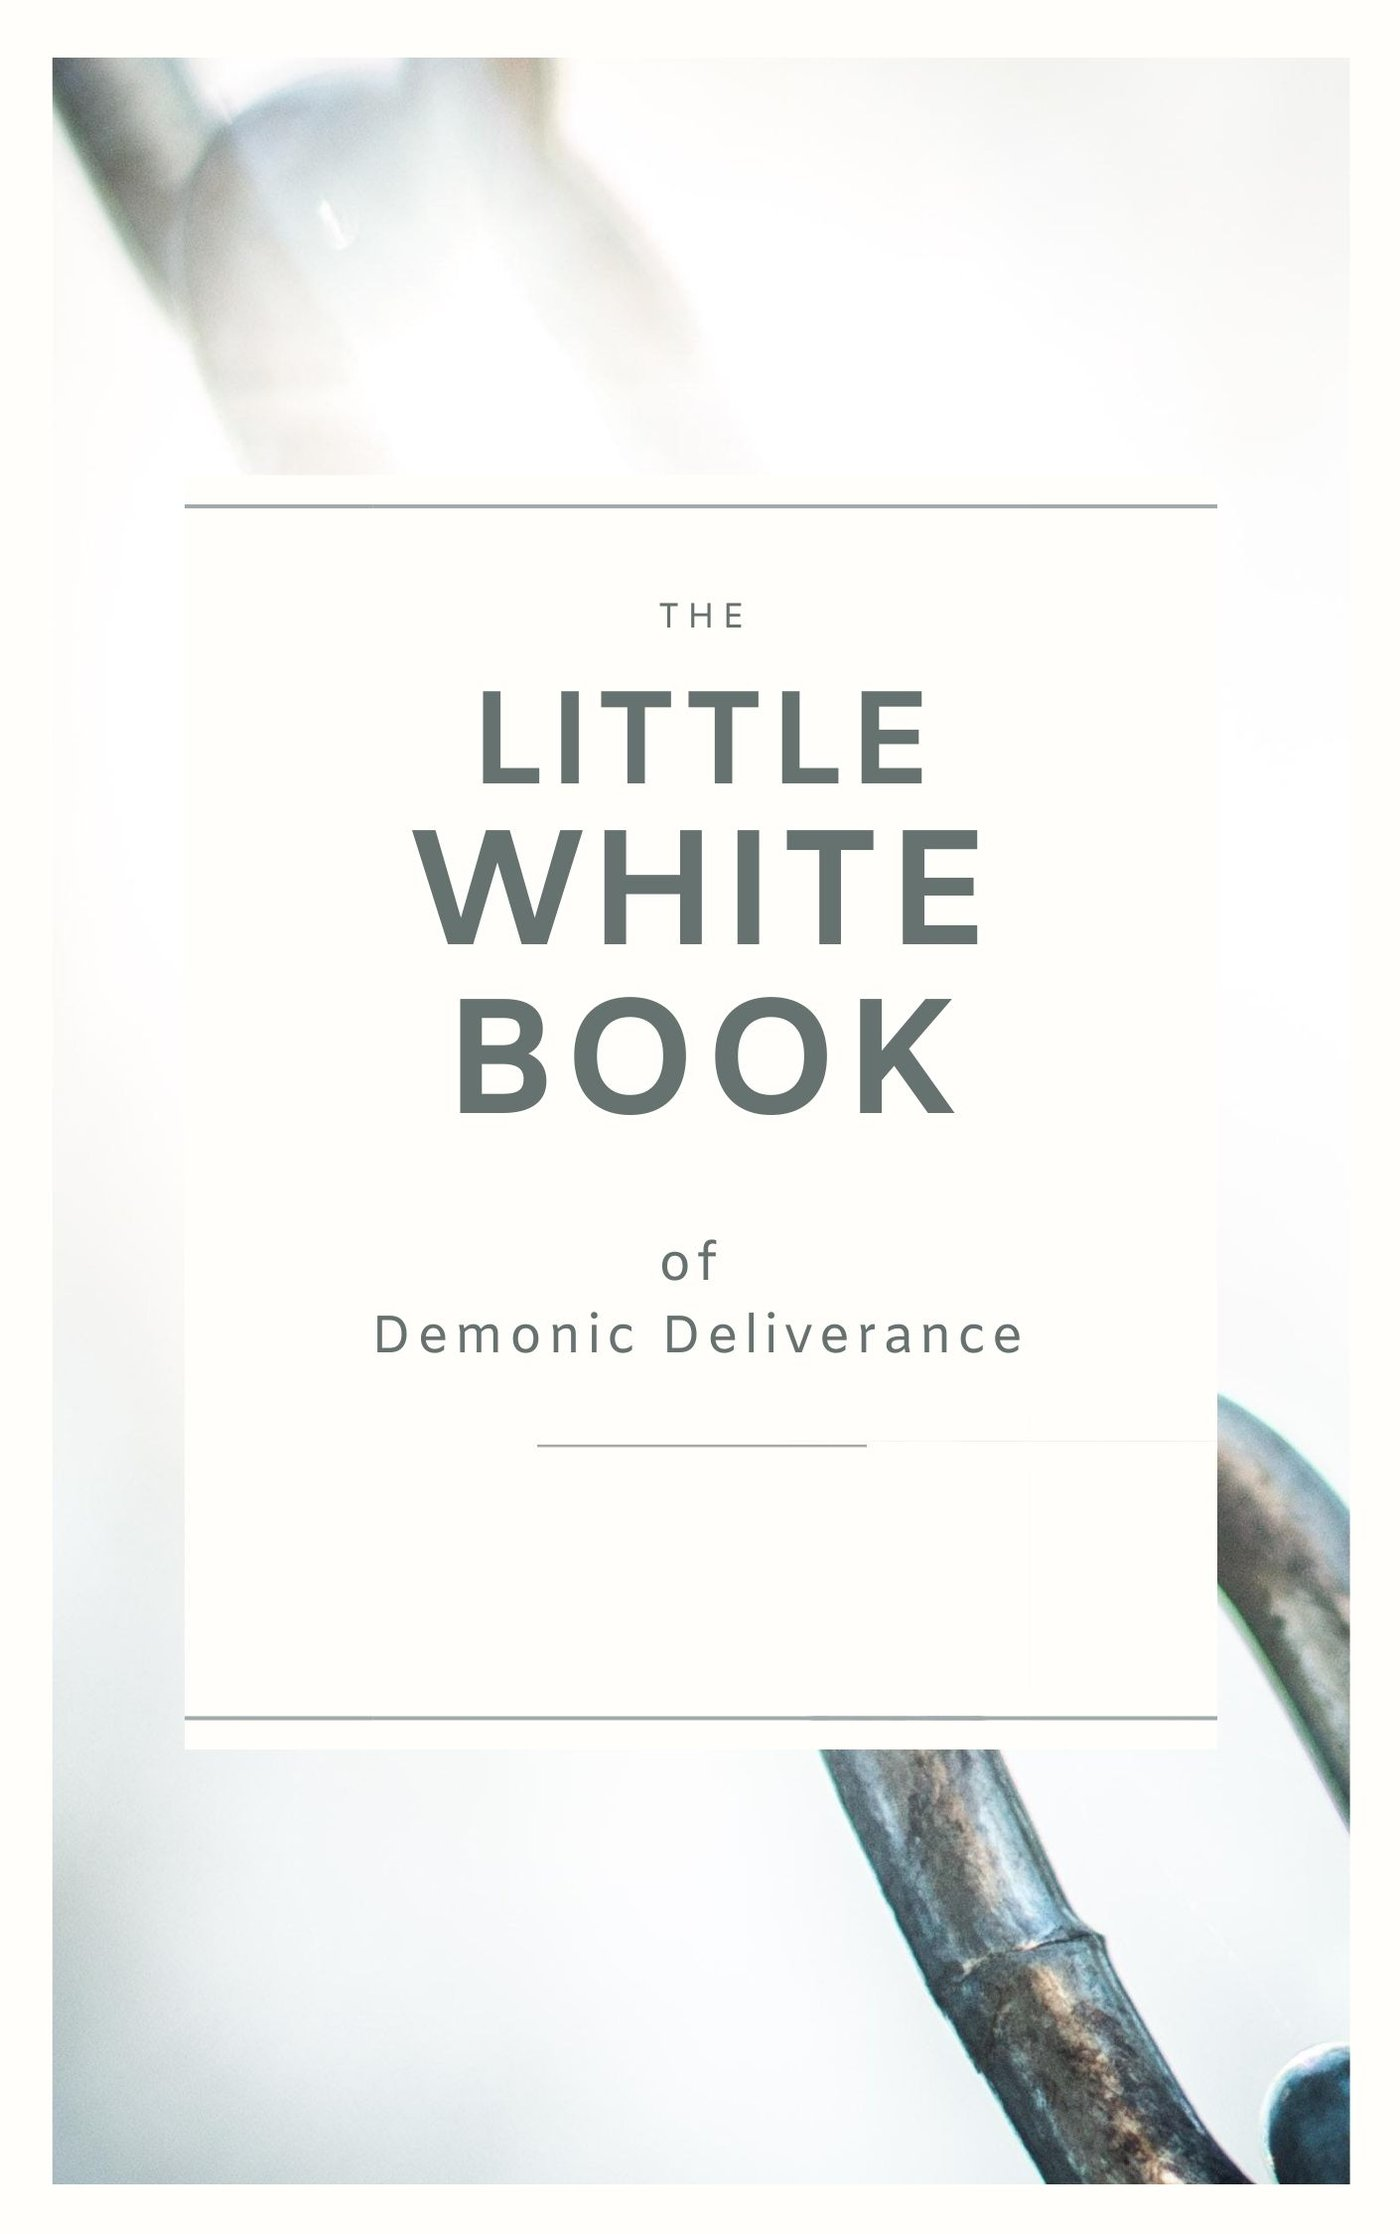 Little White Book of Demonic Deliverance